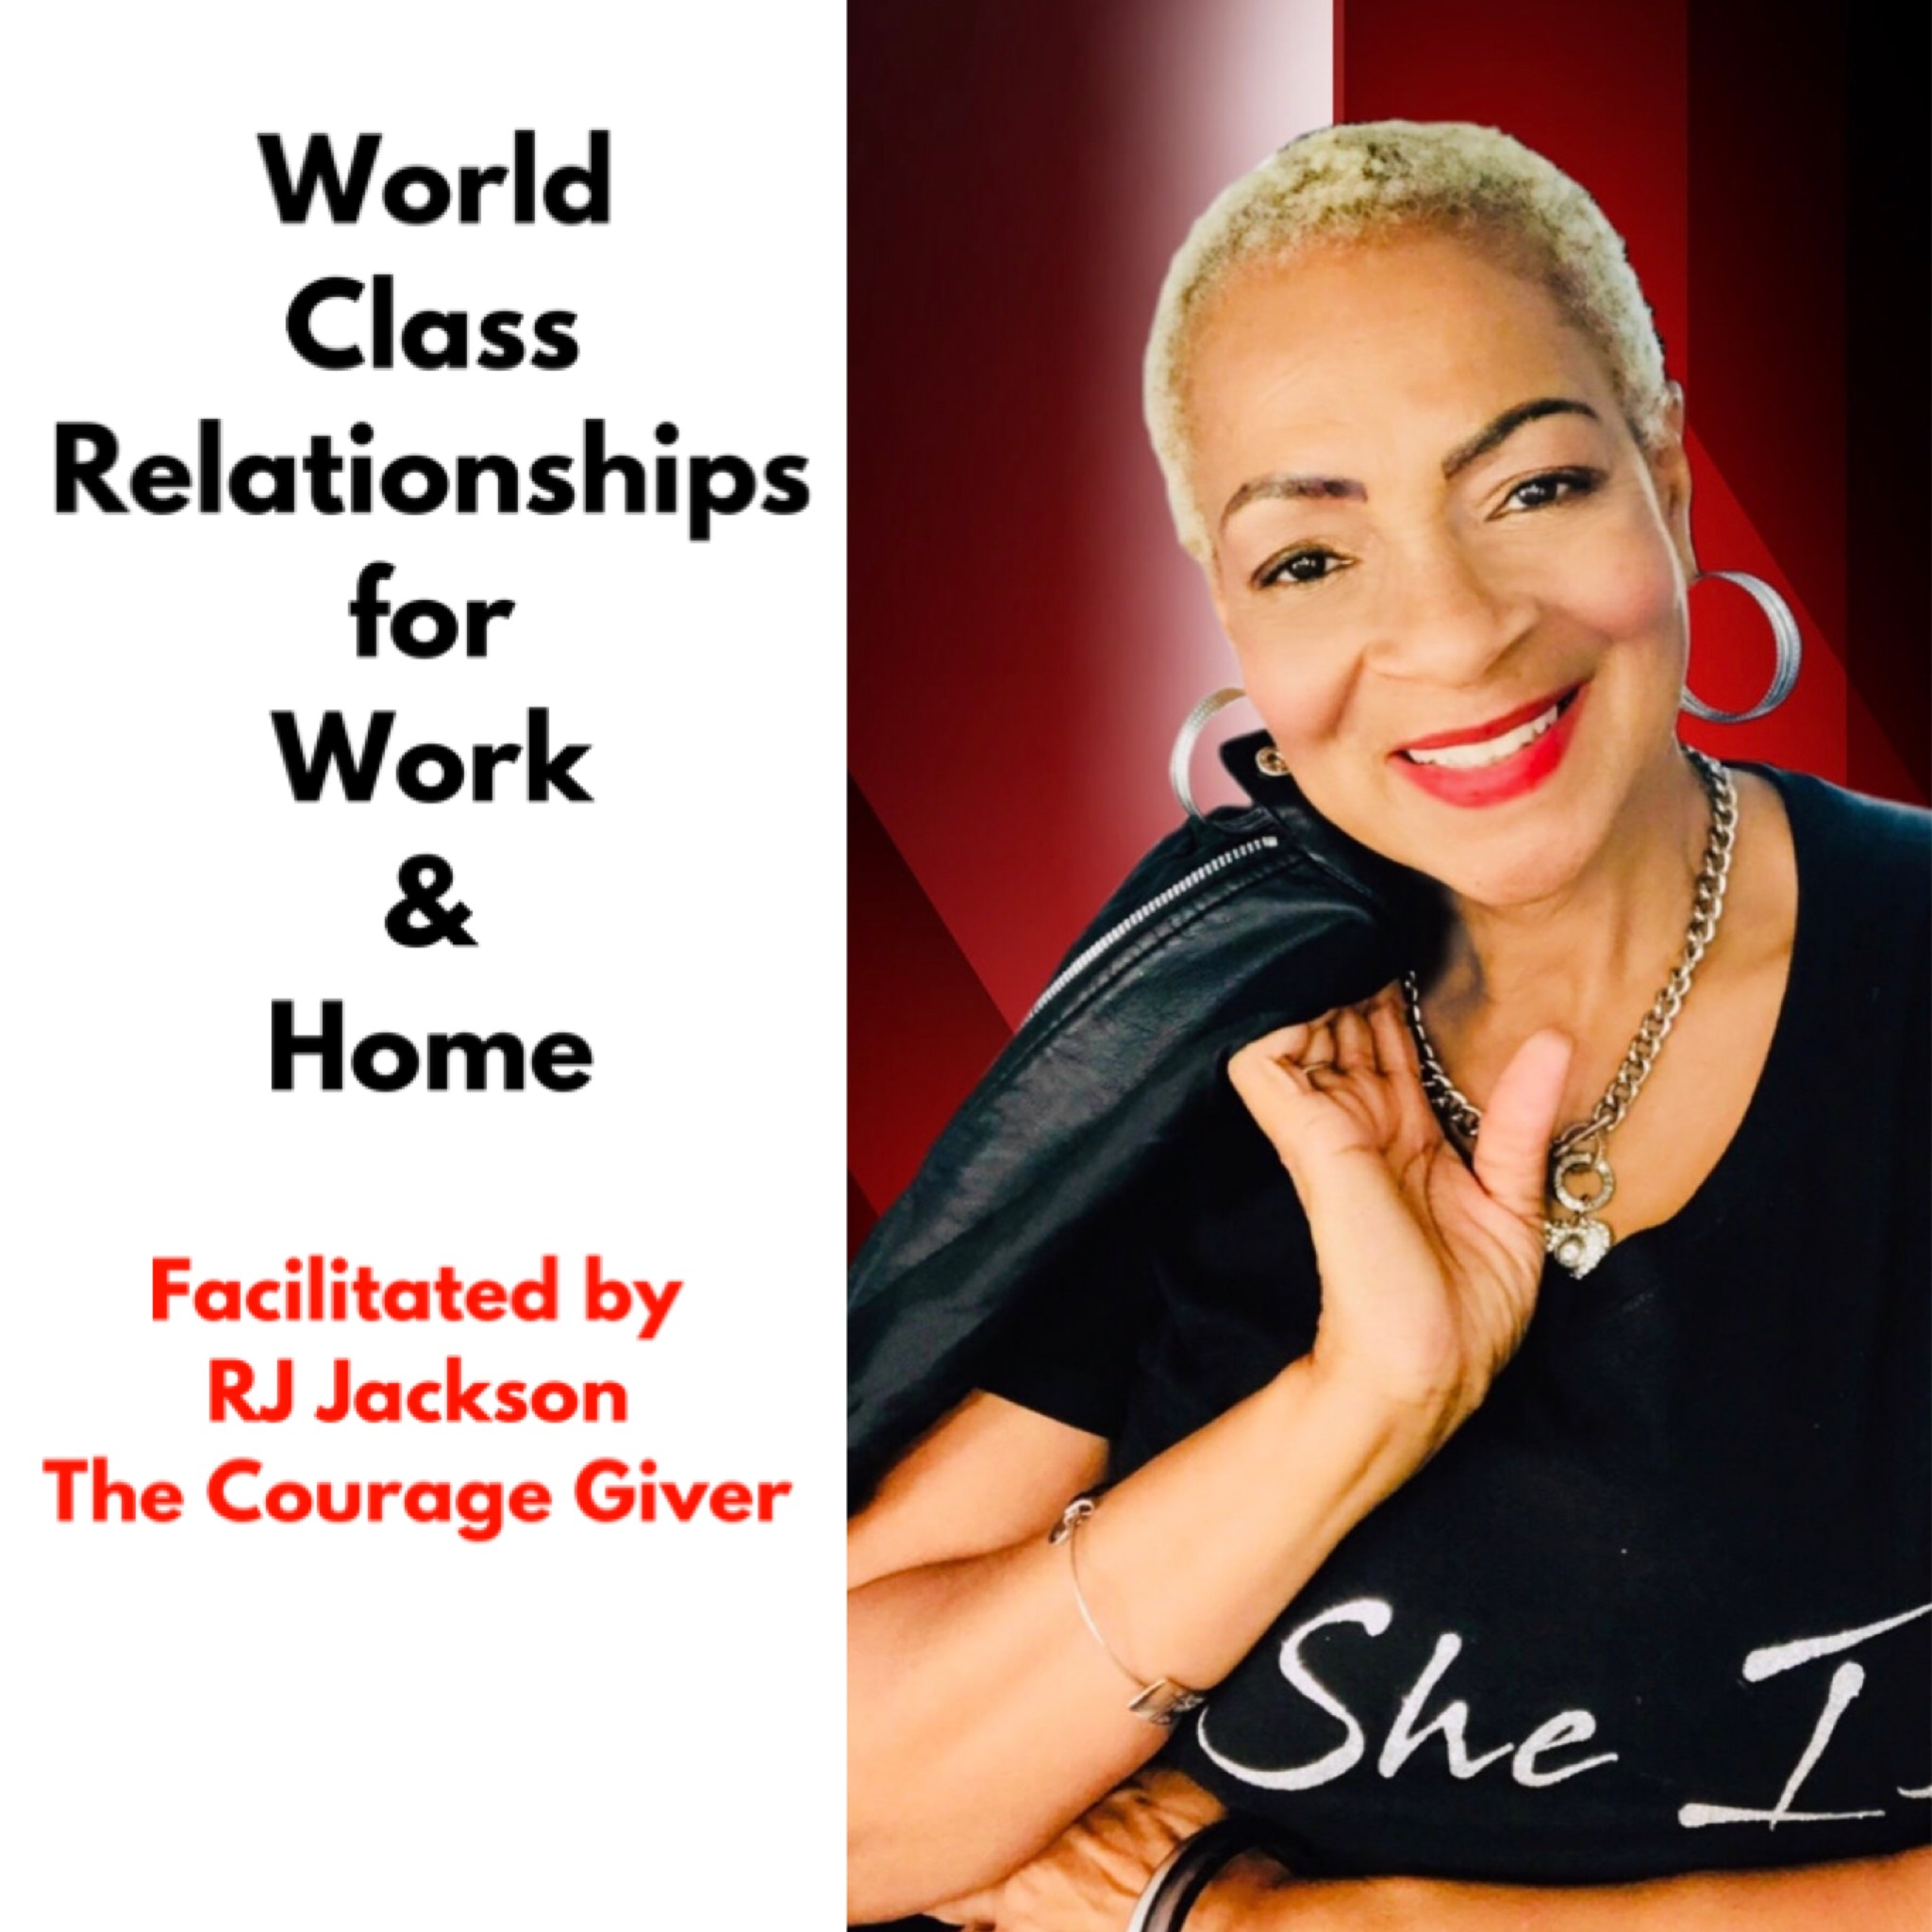 RJ-Jackson-The-Courage-Giver-World-Class-Relationships-1